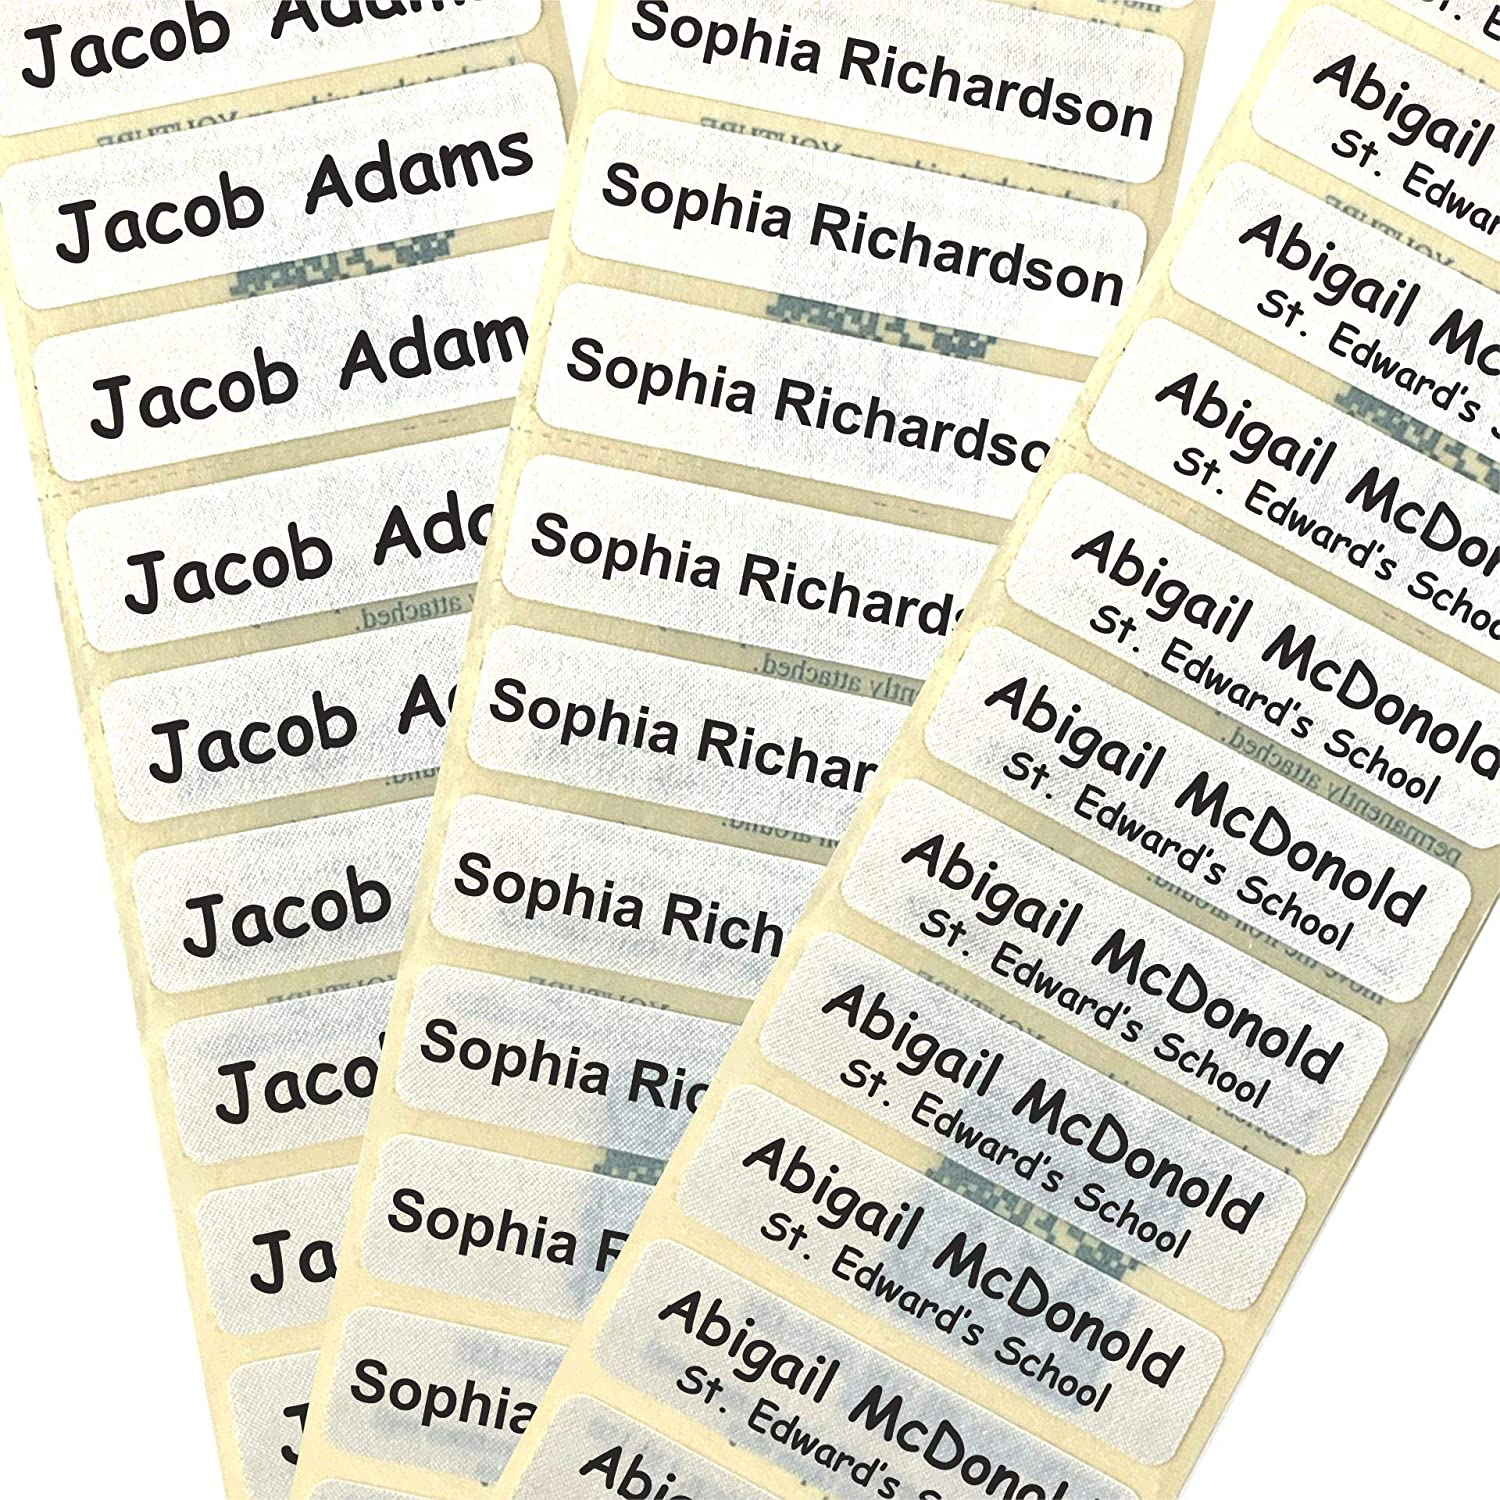 50 pre cut printed name tapes labels iron on school uniform tags pre cut nametapes in soft satin fabric amazon co uk office products